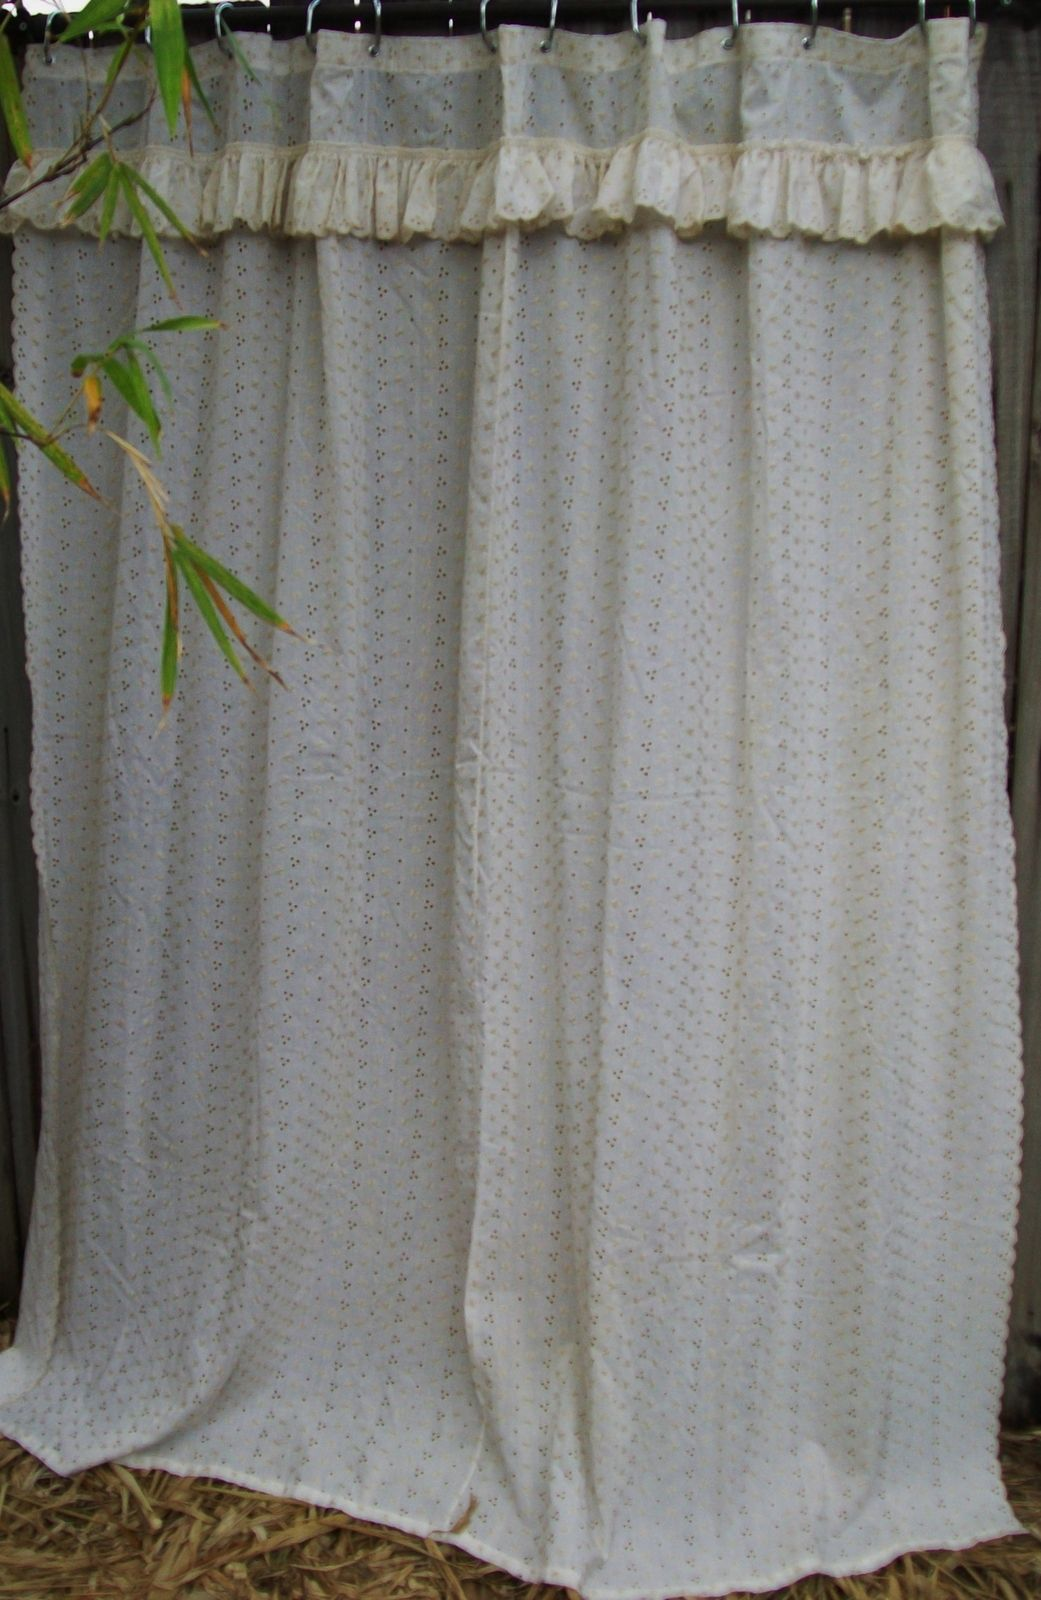 Jolo Ivory Lace Eyelet Fabric Shower Curtain With Attached Ruffled